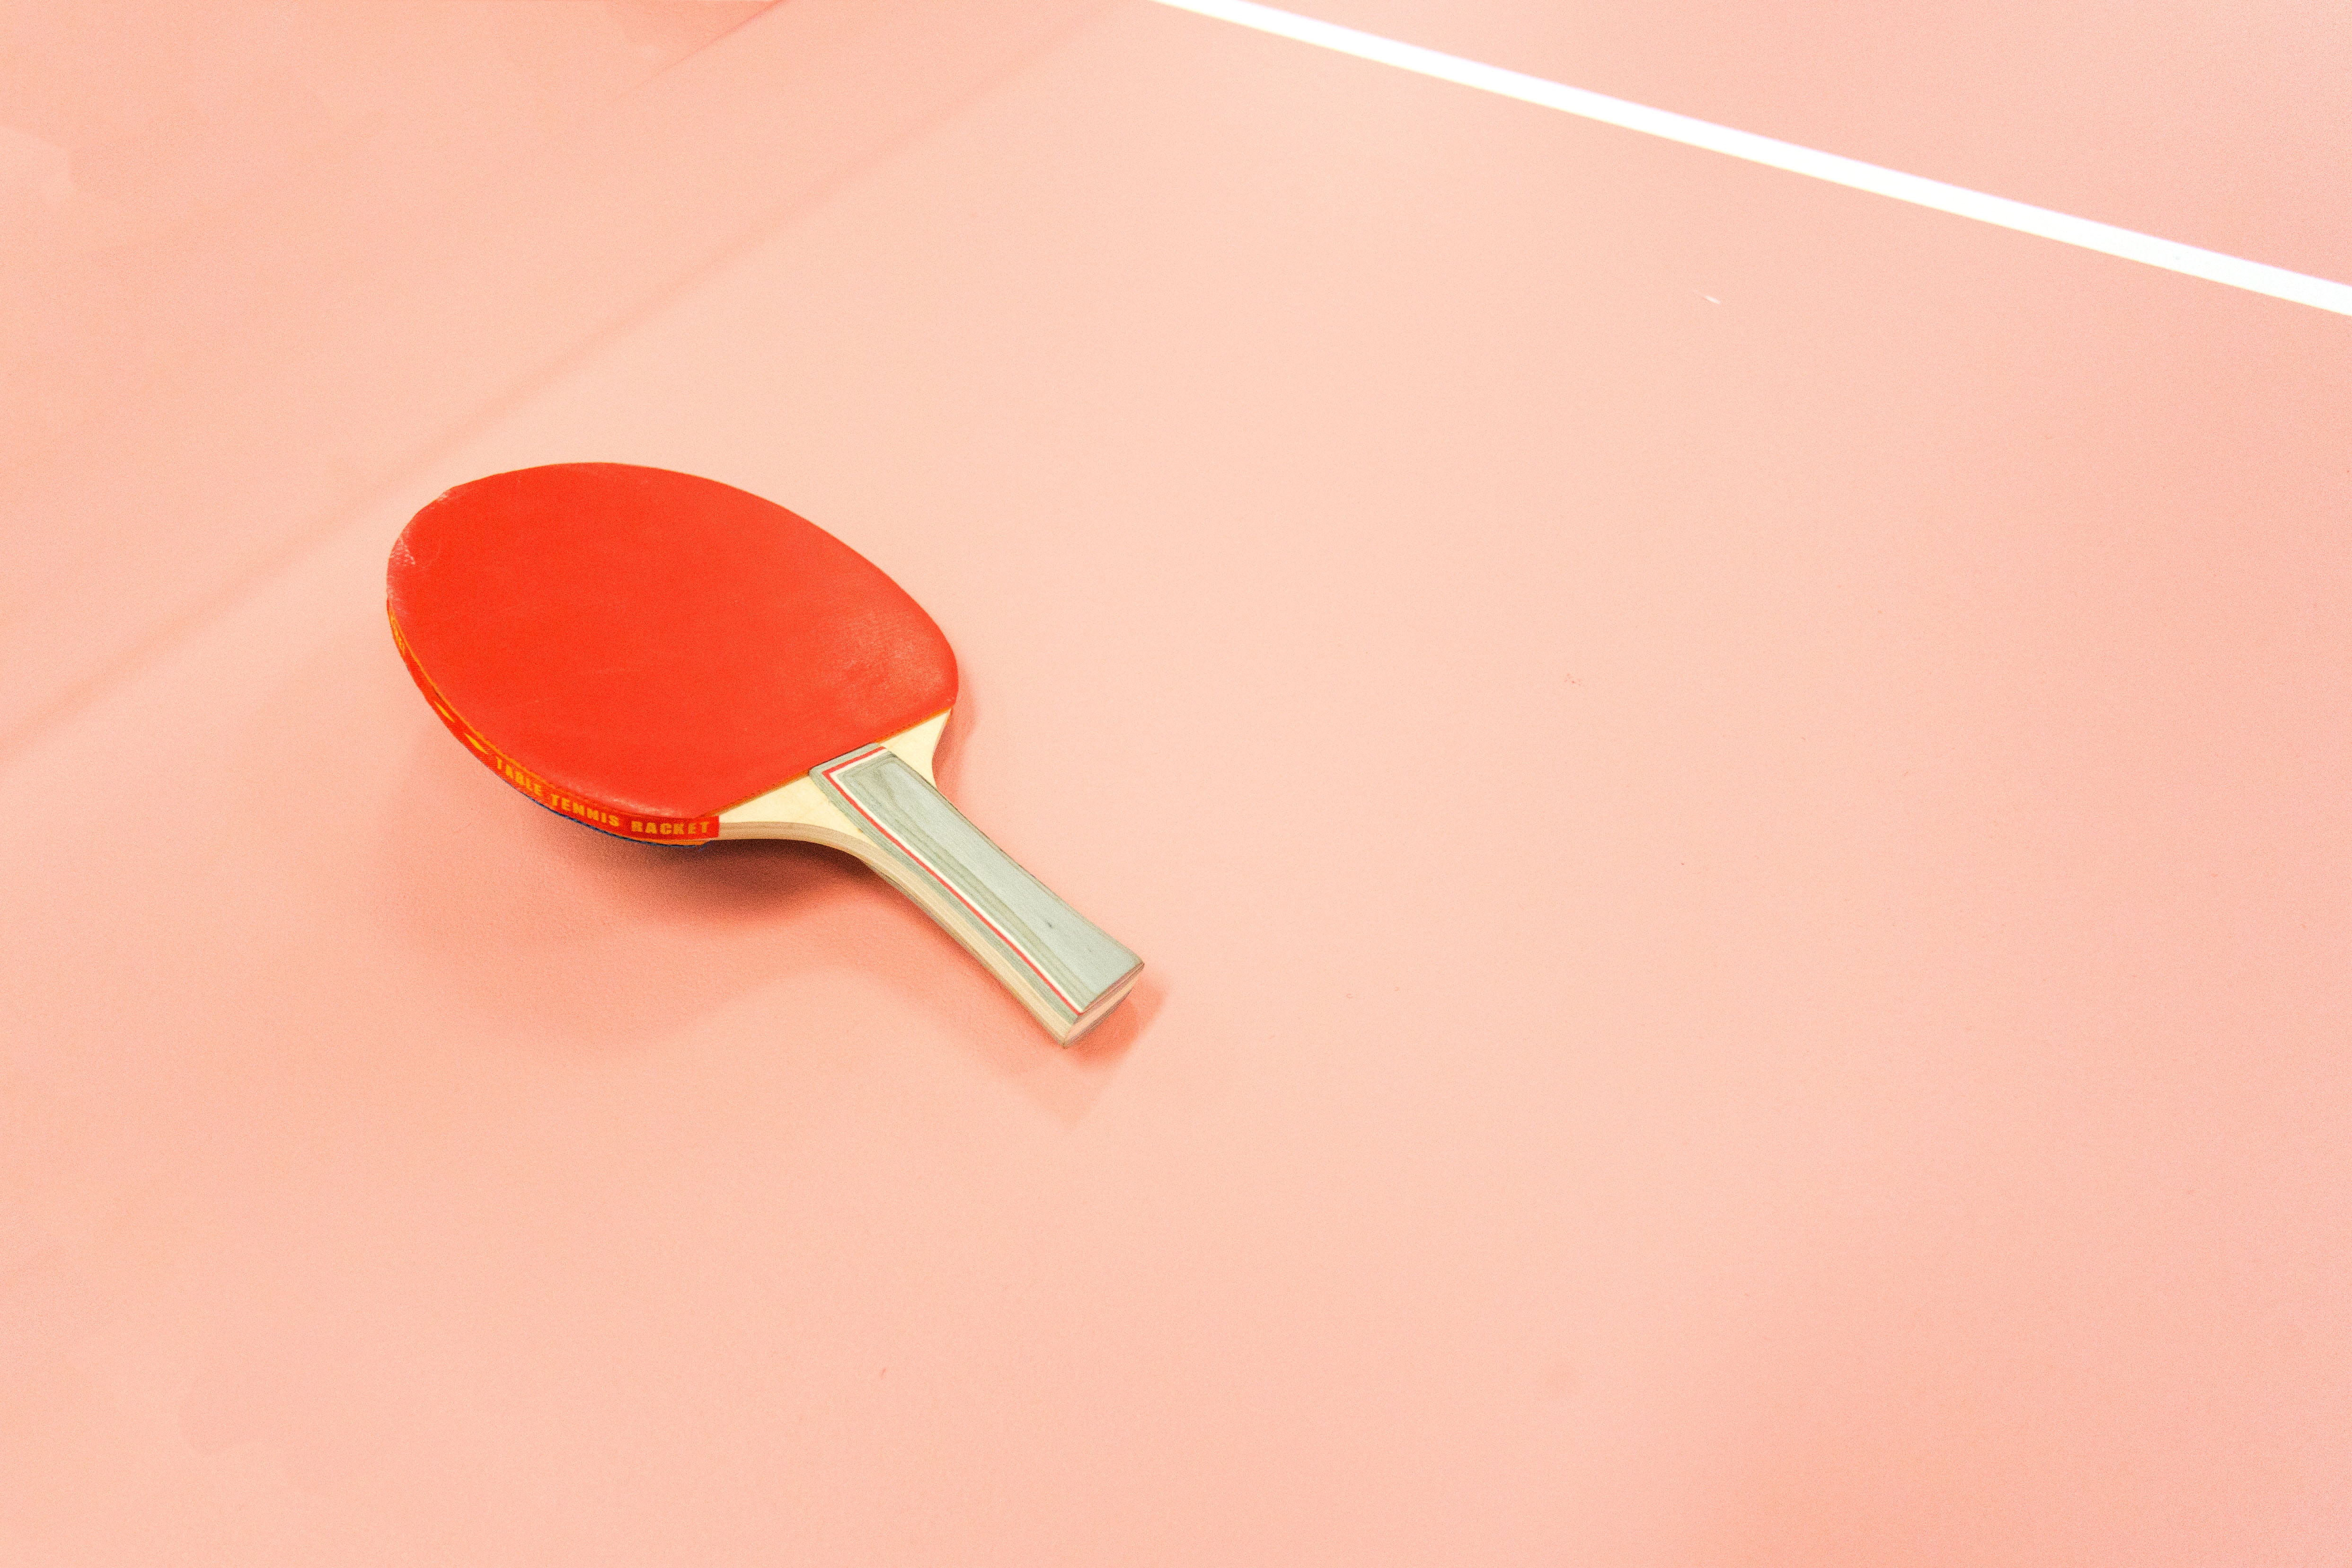 A red table tennis paddle sitting on a court.